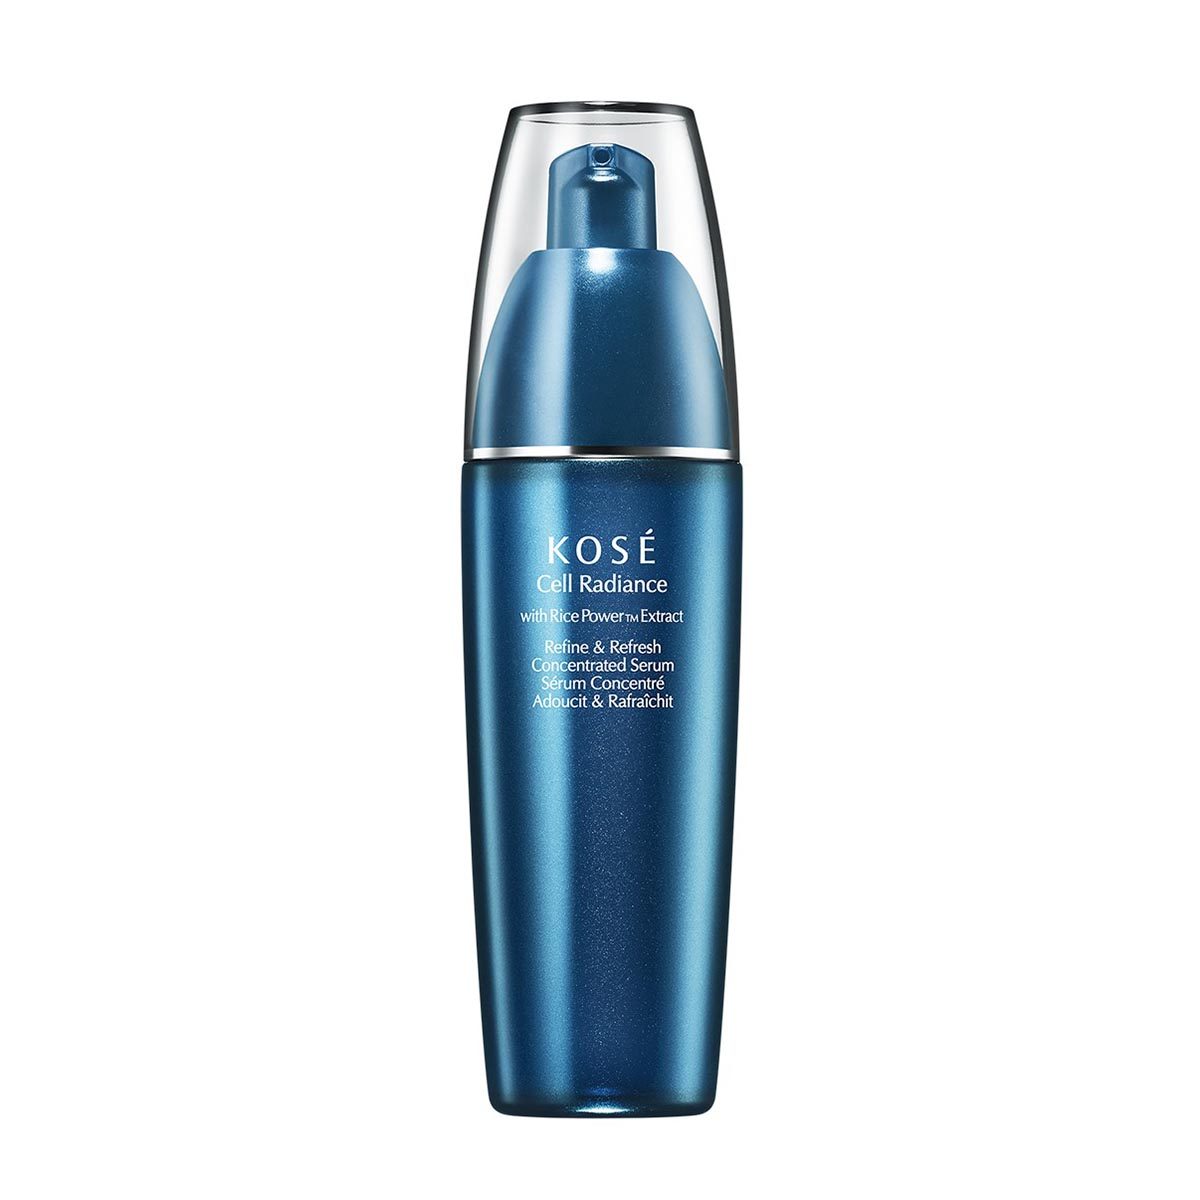 Kose cell radiance with rice power extract refine refreshconcentrated serum 50ml